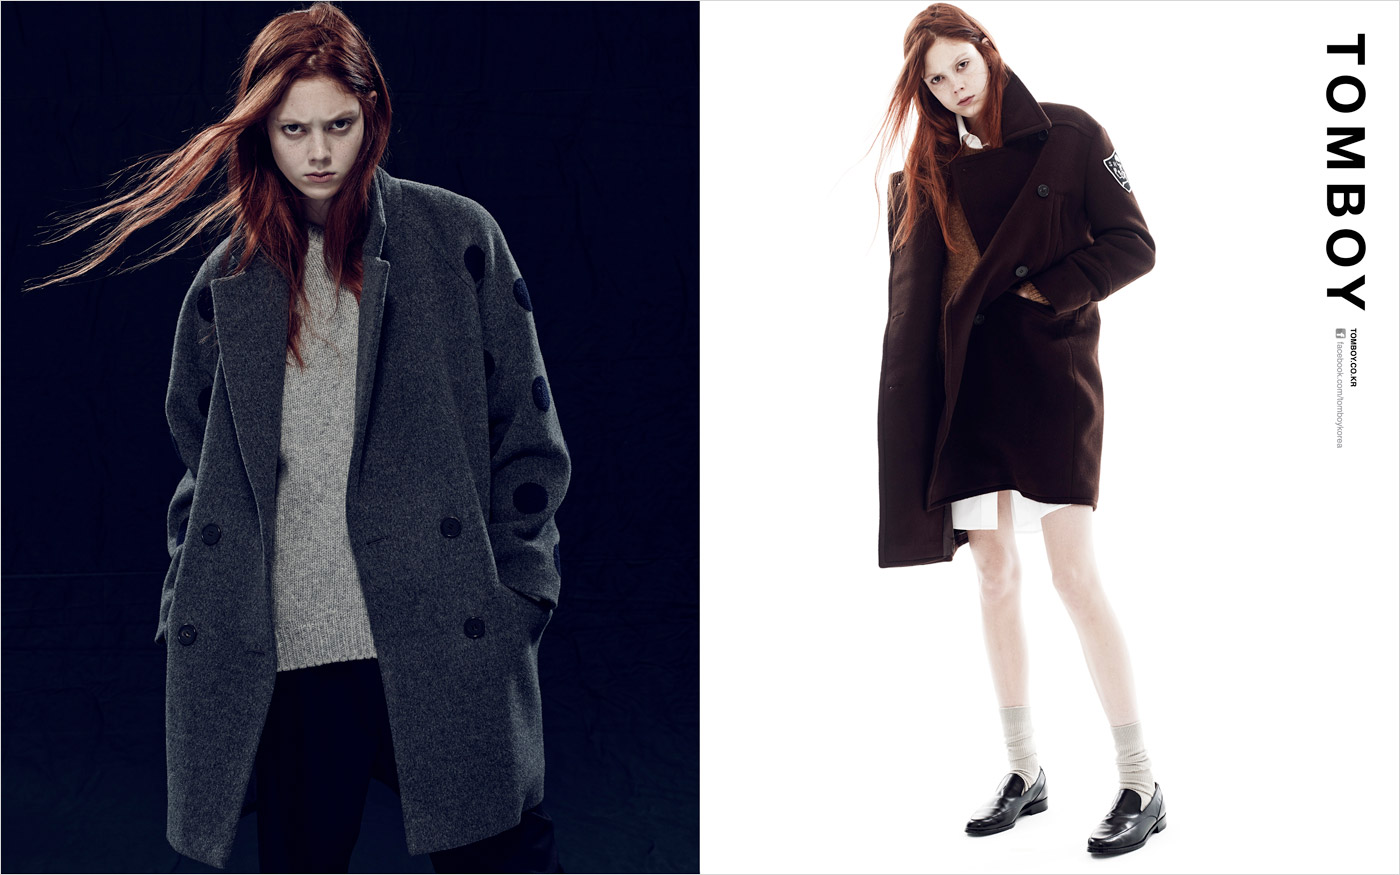 Communication on this topic: Chanel's Pre-Fall 2019 Campaign Features Natalie Westling , chanels-pre-fall-2019-campaign-features-natalie-westling/